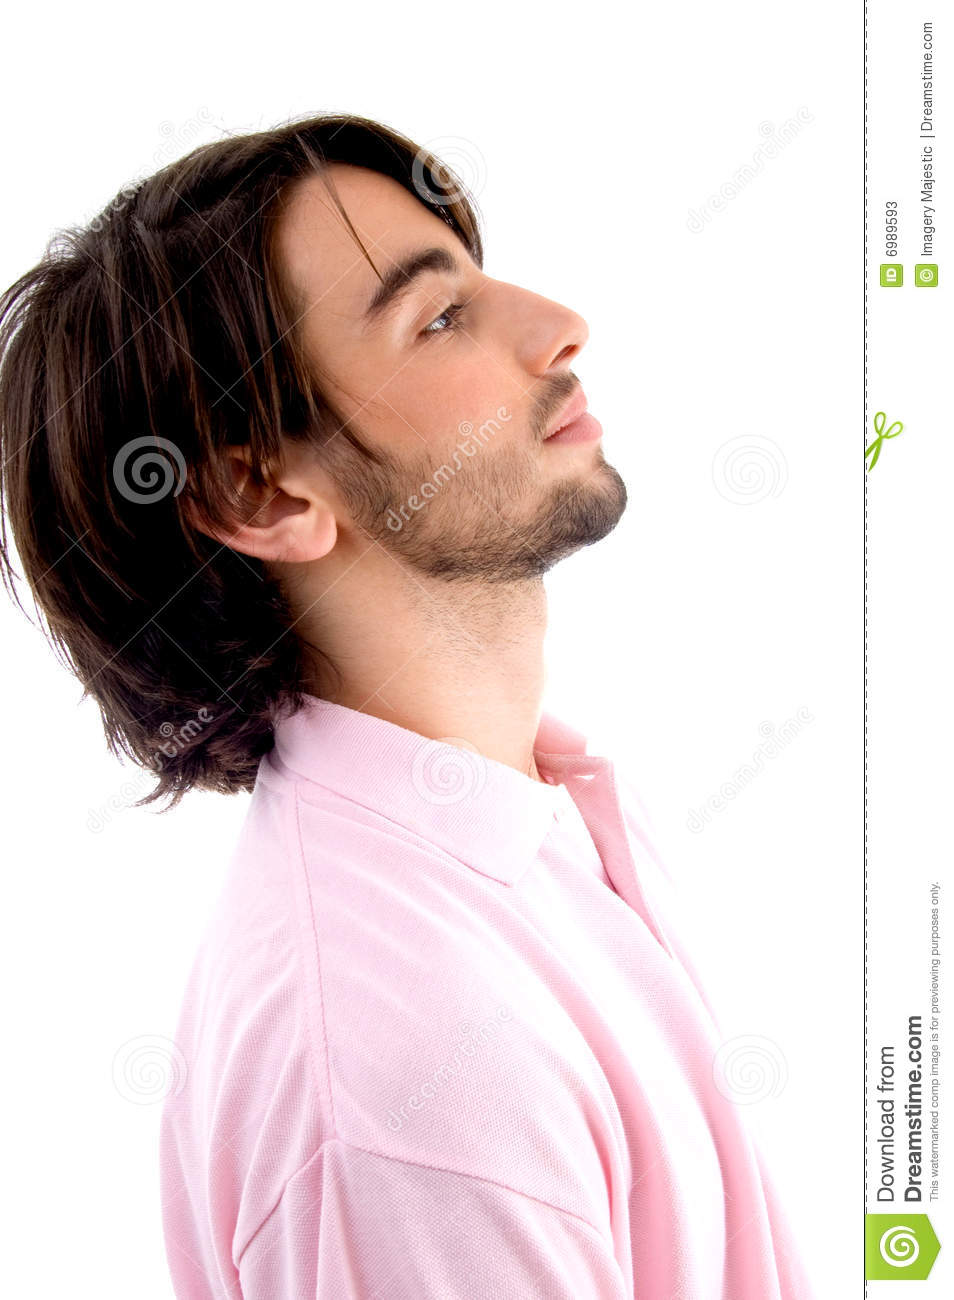 Male Model Side Profile | Male Models Picture